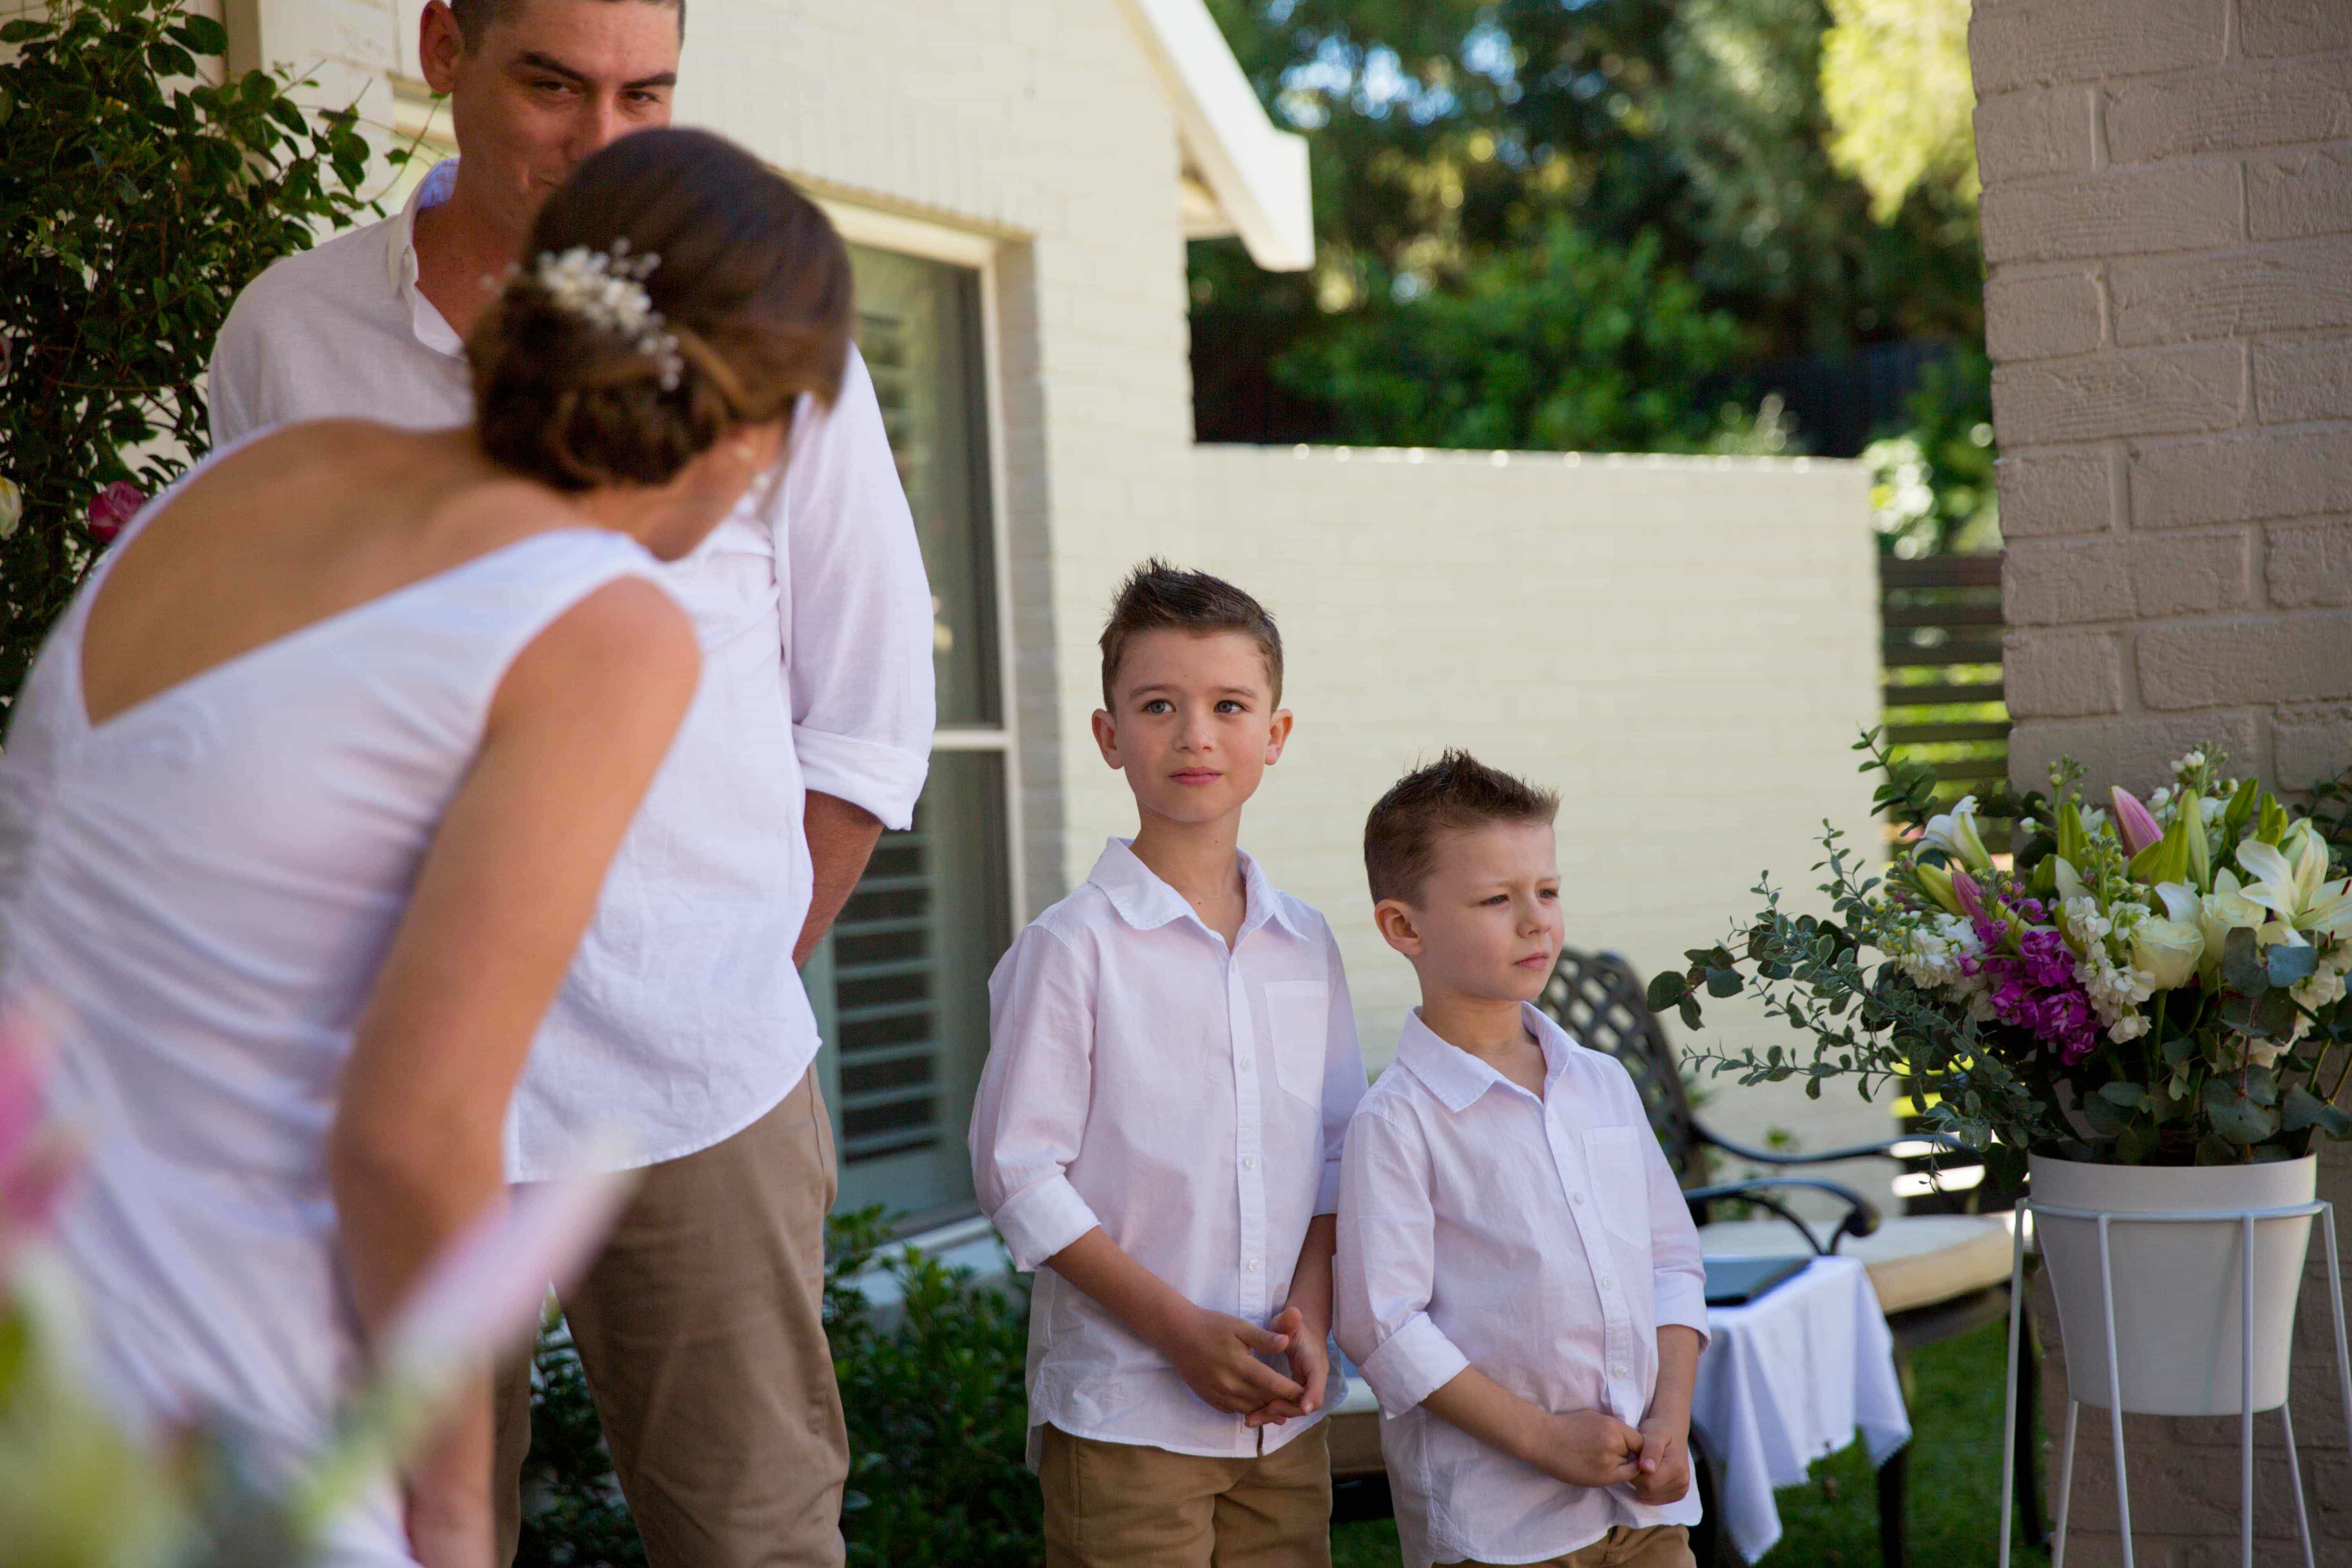 Marriage ceremony with 2 kids smiling at the alter at Whitebridge NSW